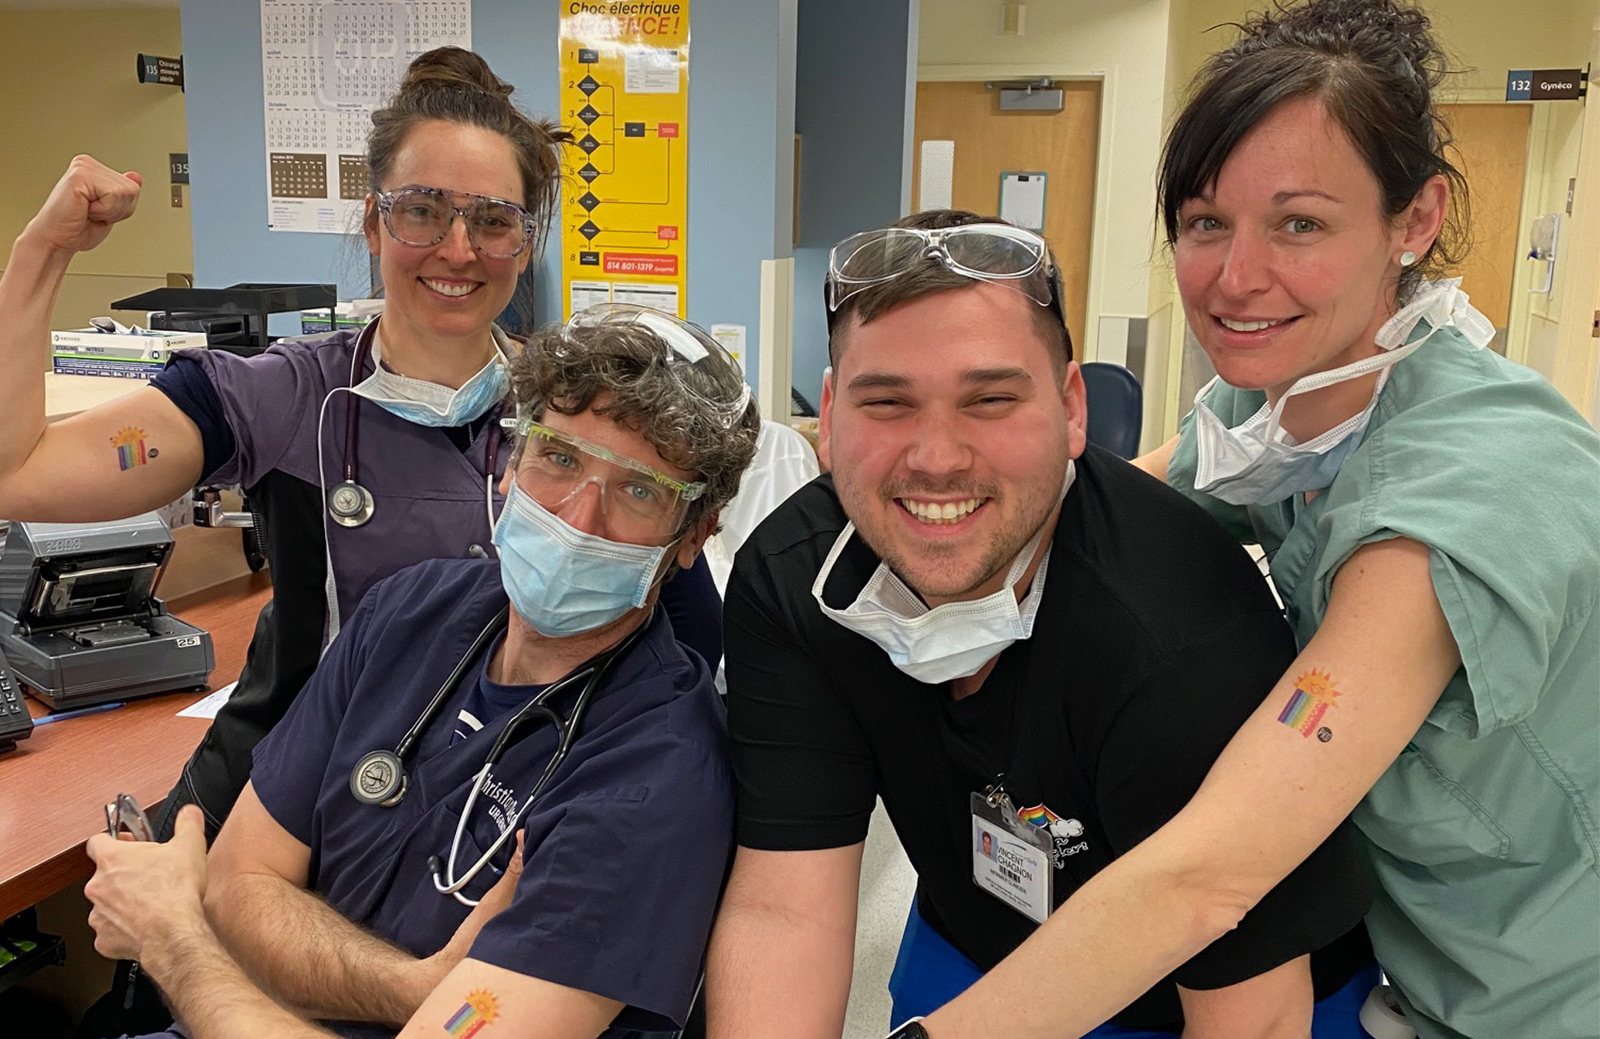 Pandemic, Life and Love through the eye of an ER doc